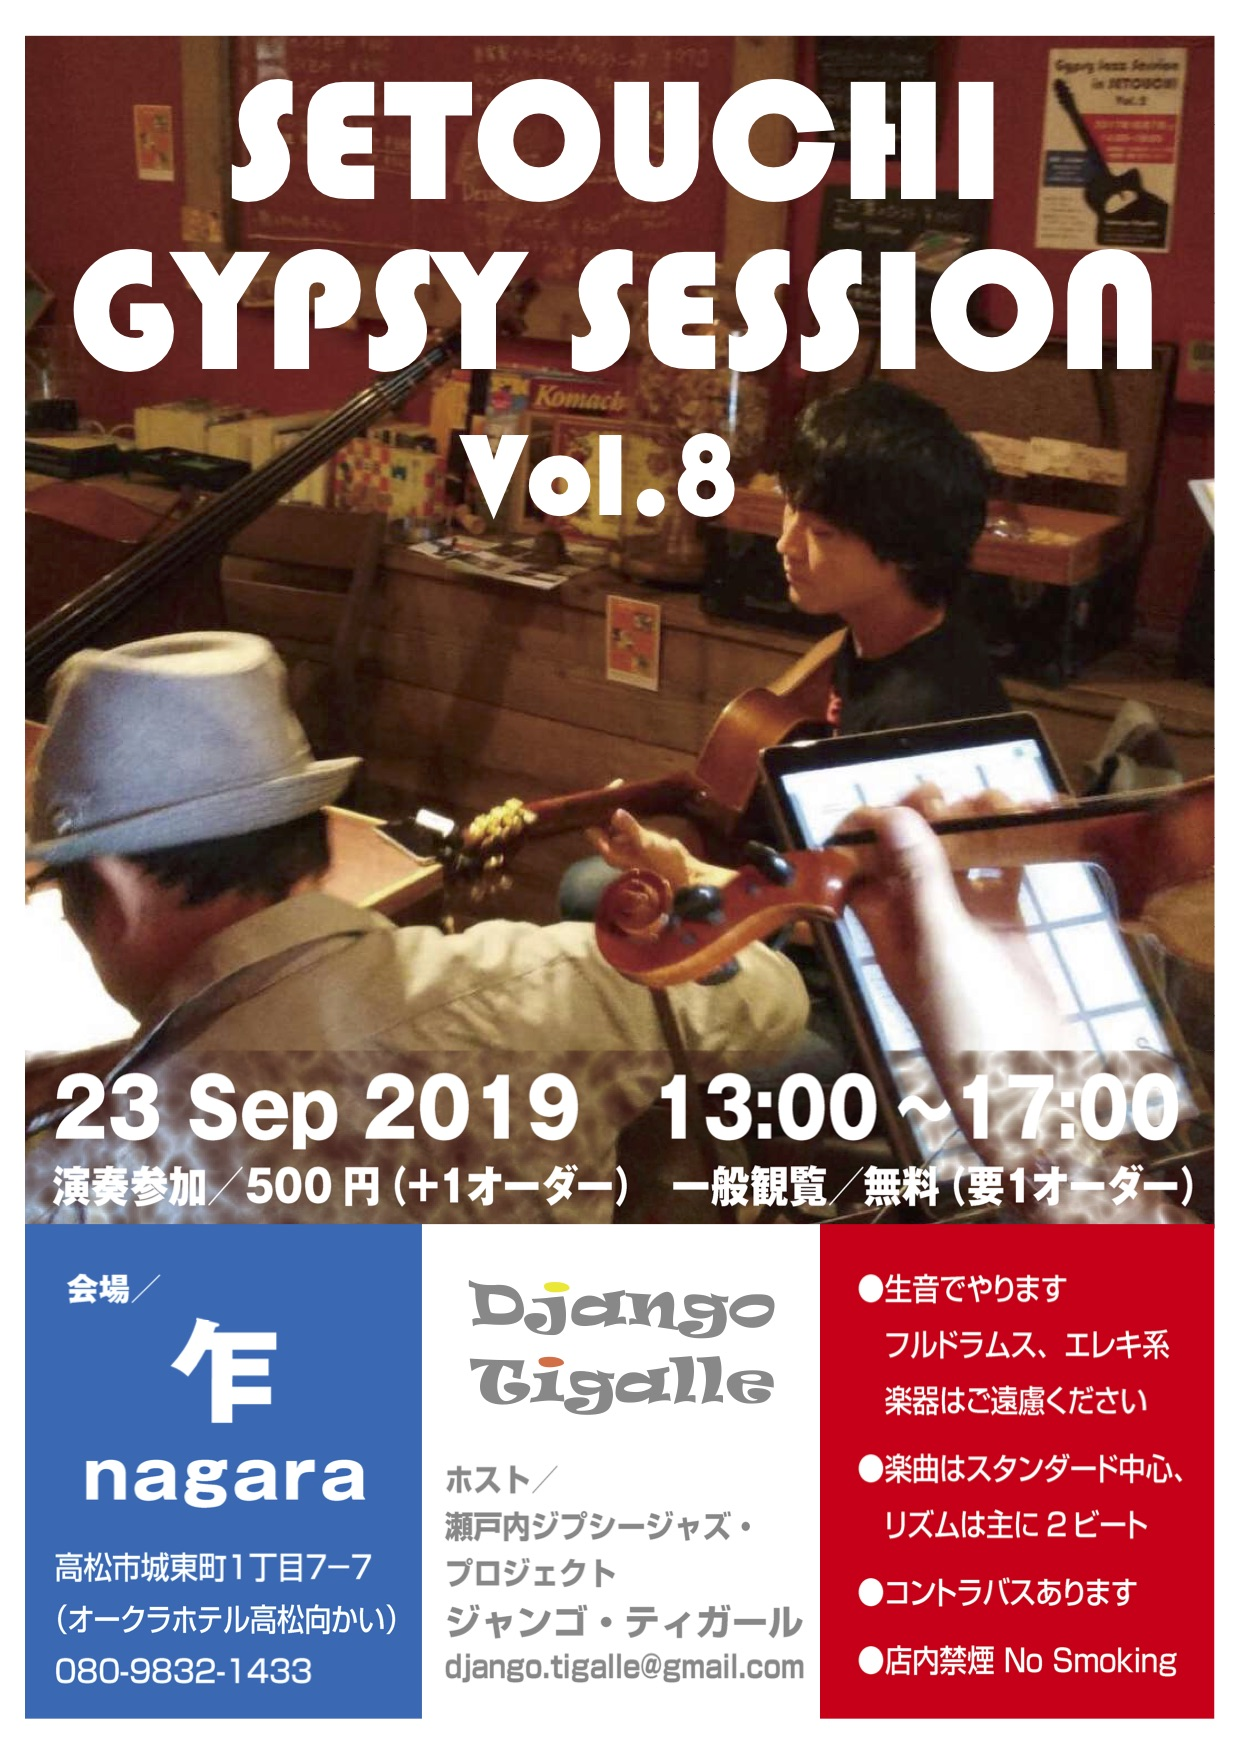 Setouchi Gypsy Session